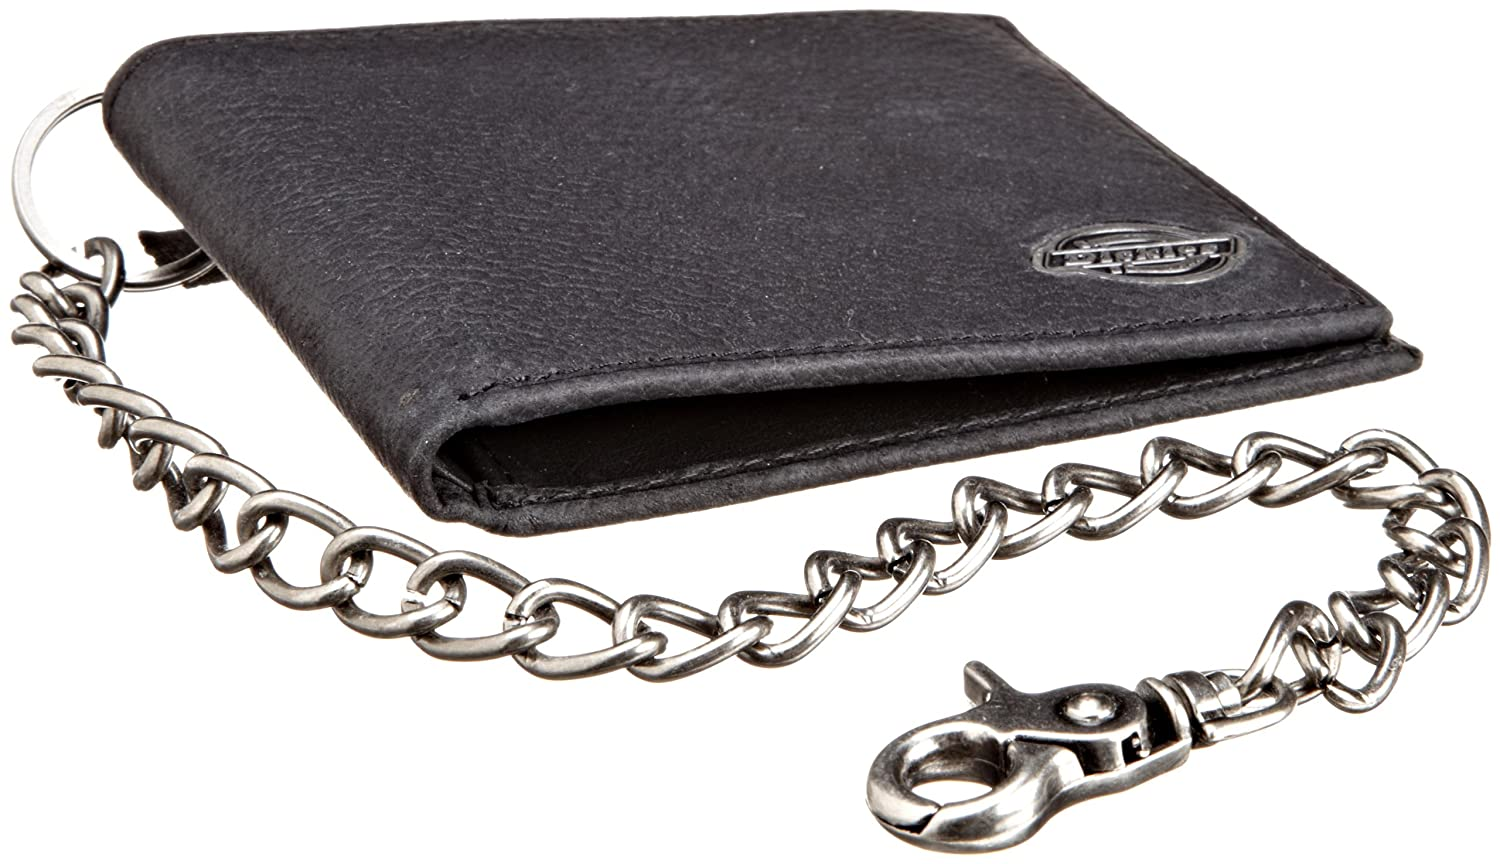 Dickies Leather Slimfold Wallet Chain Image 3